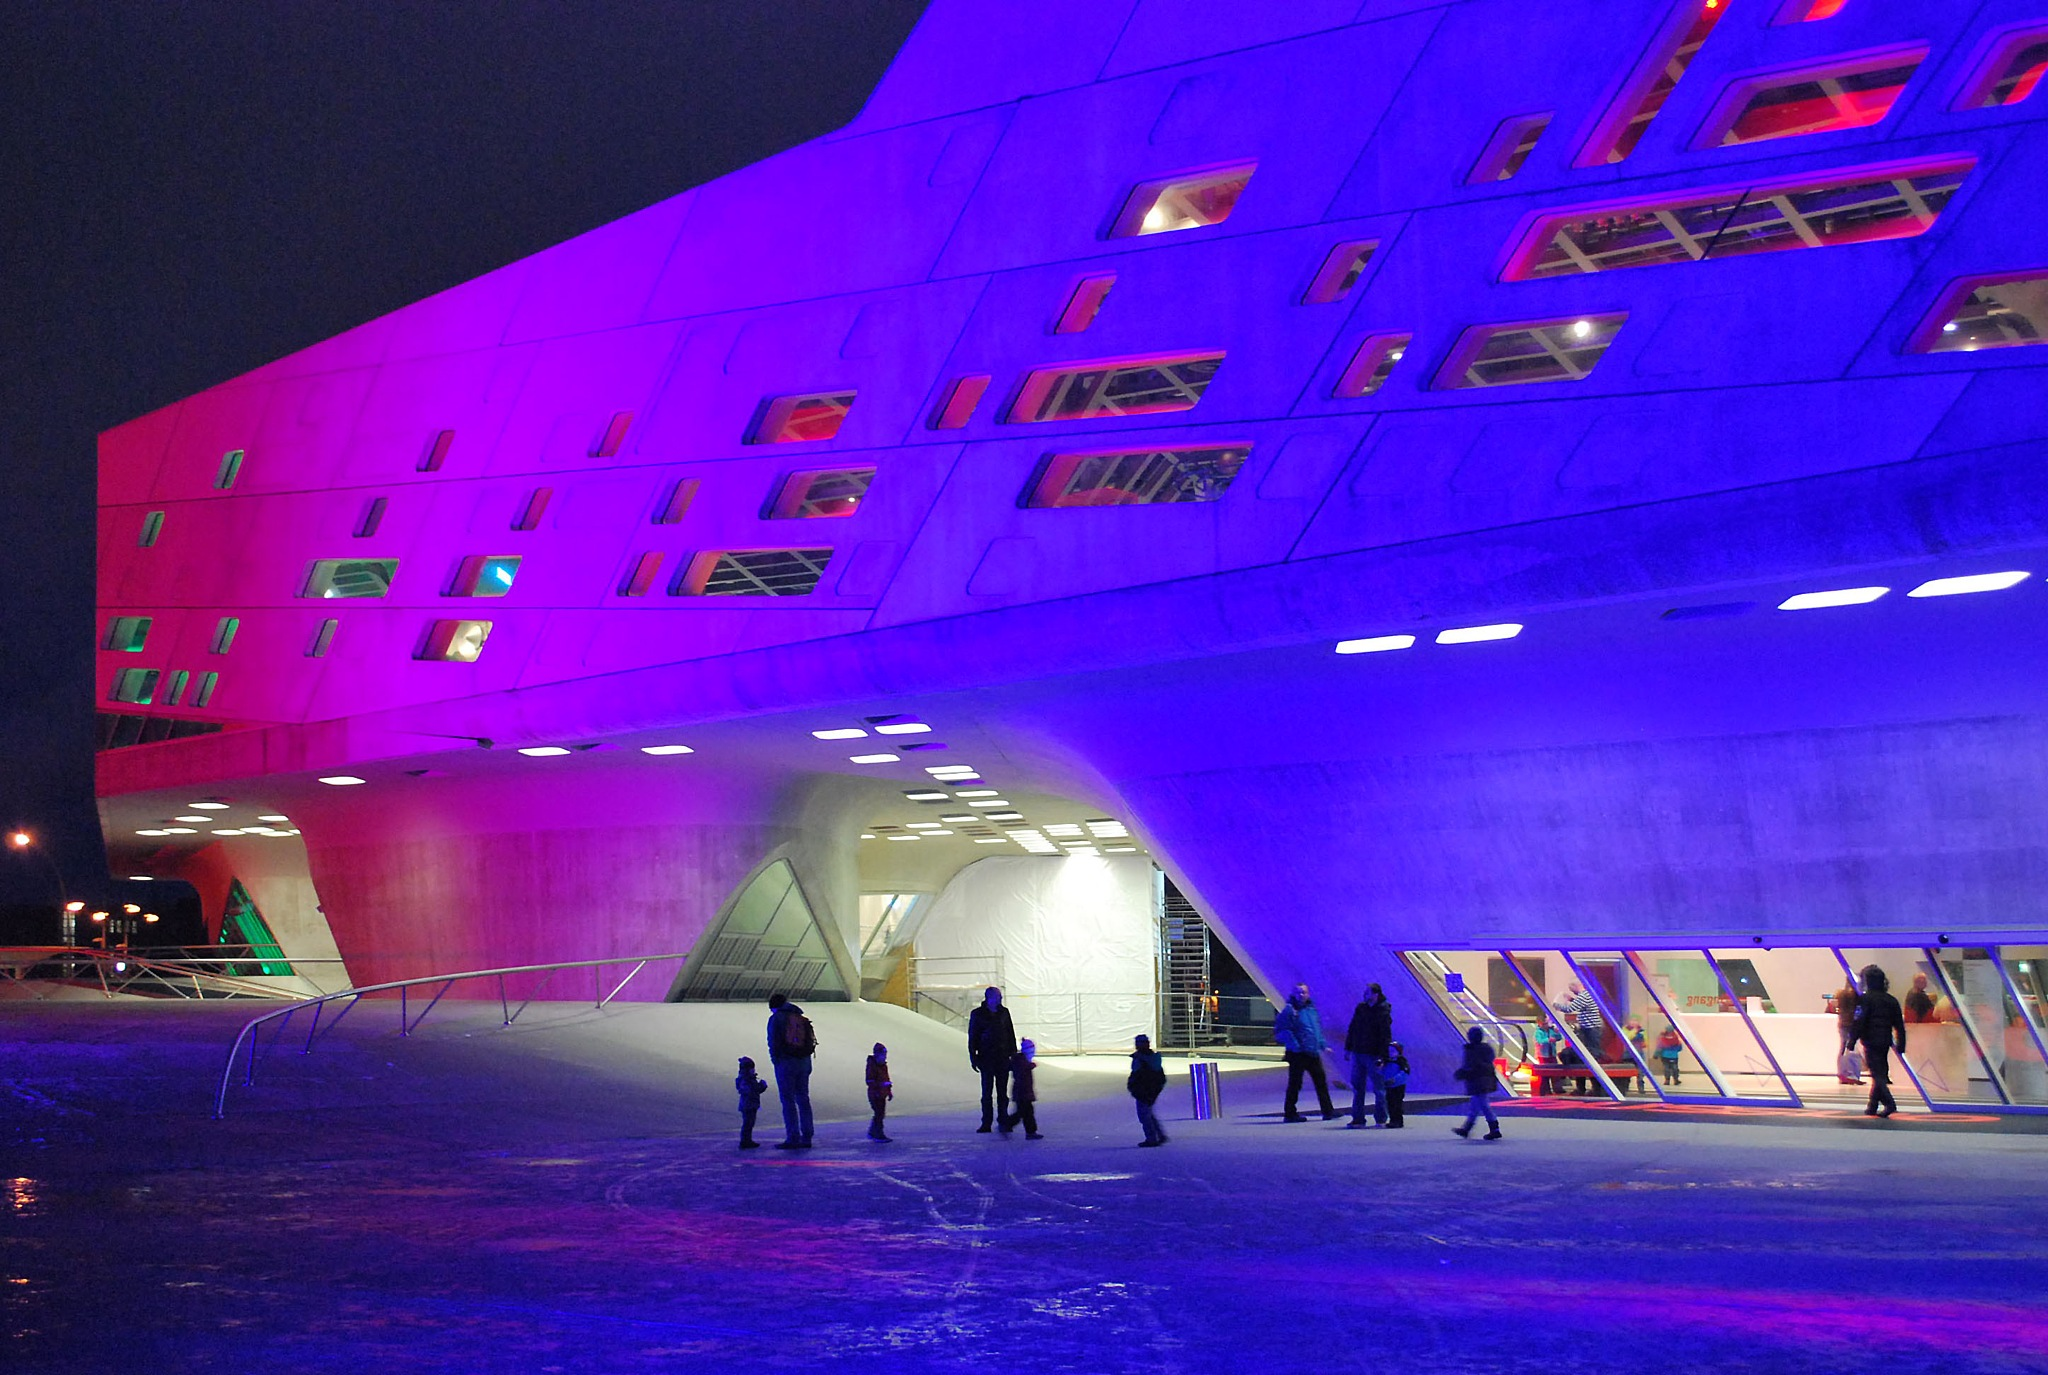 The nighttime colors of the Phaeno Center by liwesta